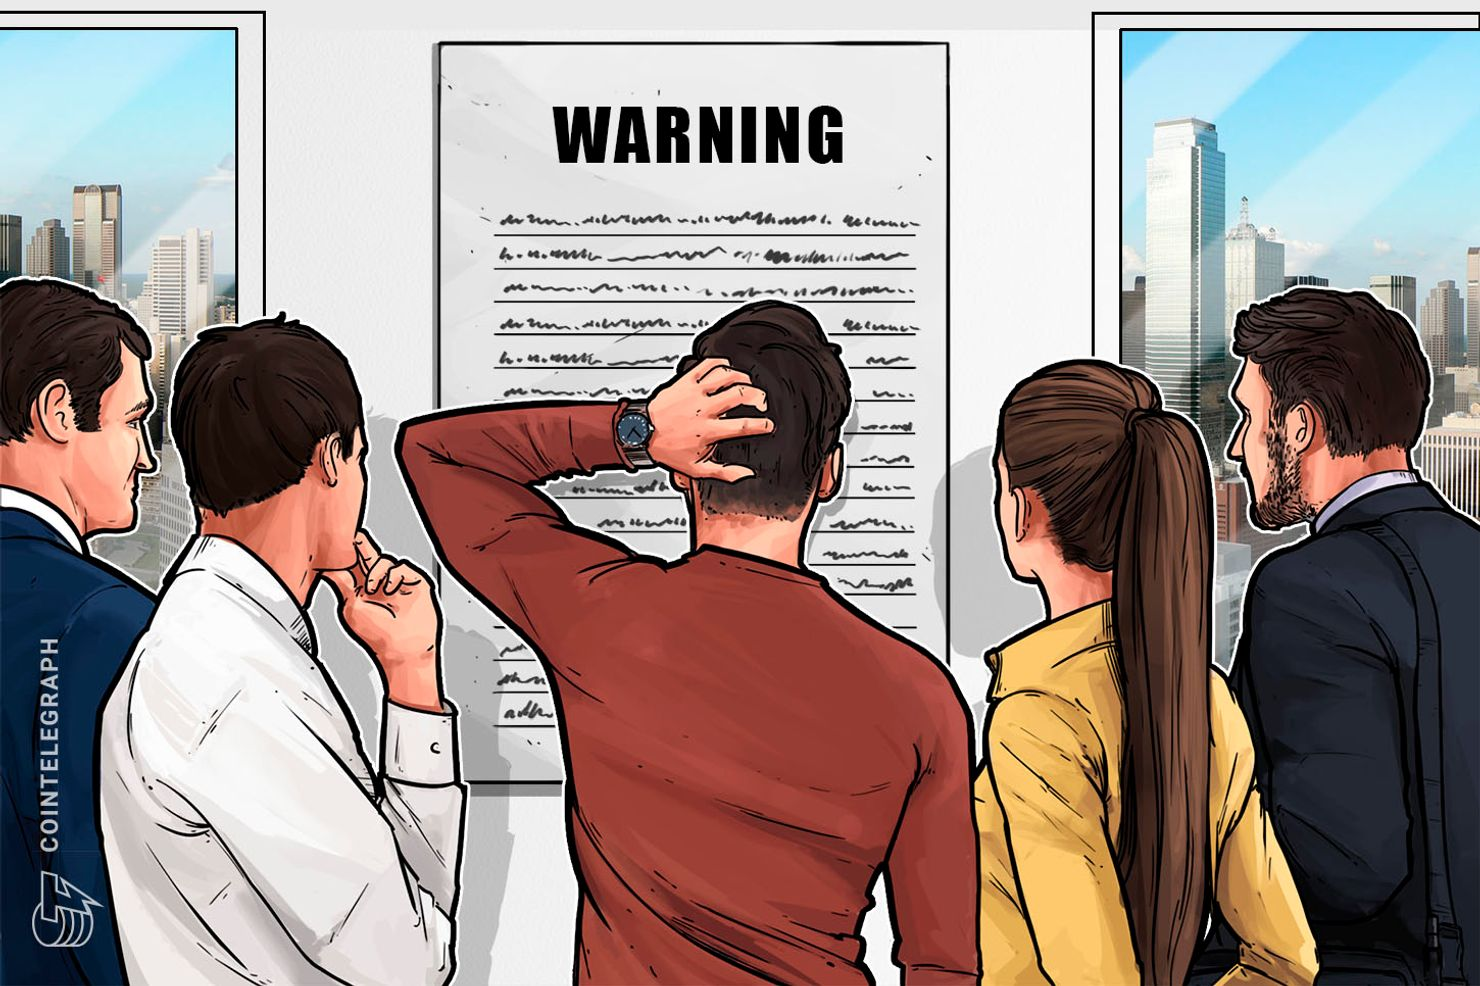 Bank of Spain Warns Citizens Against Crypto Given Lack of Local Regulations